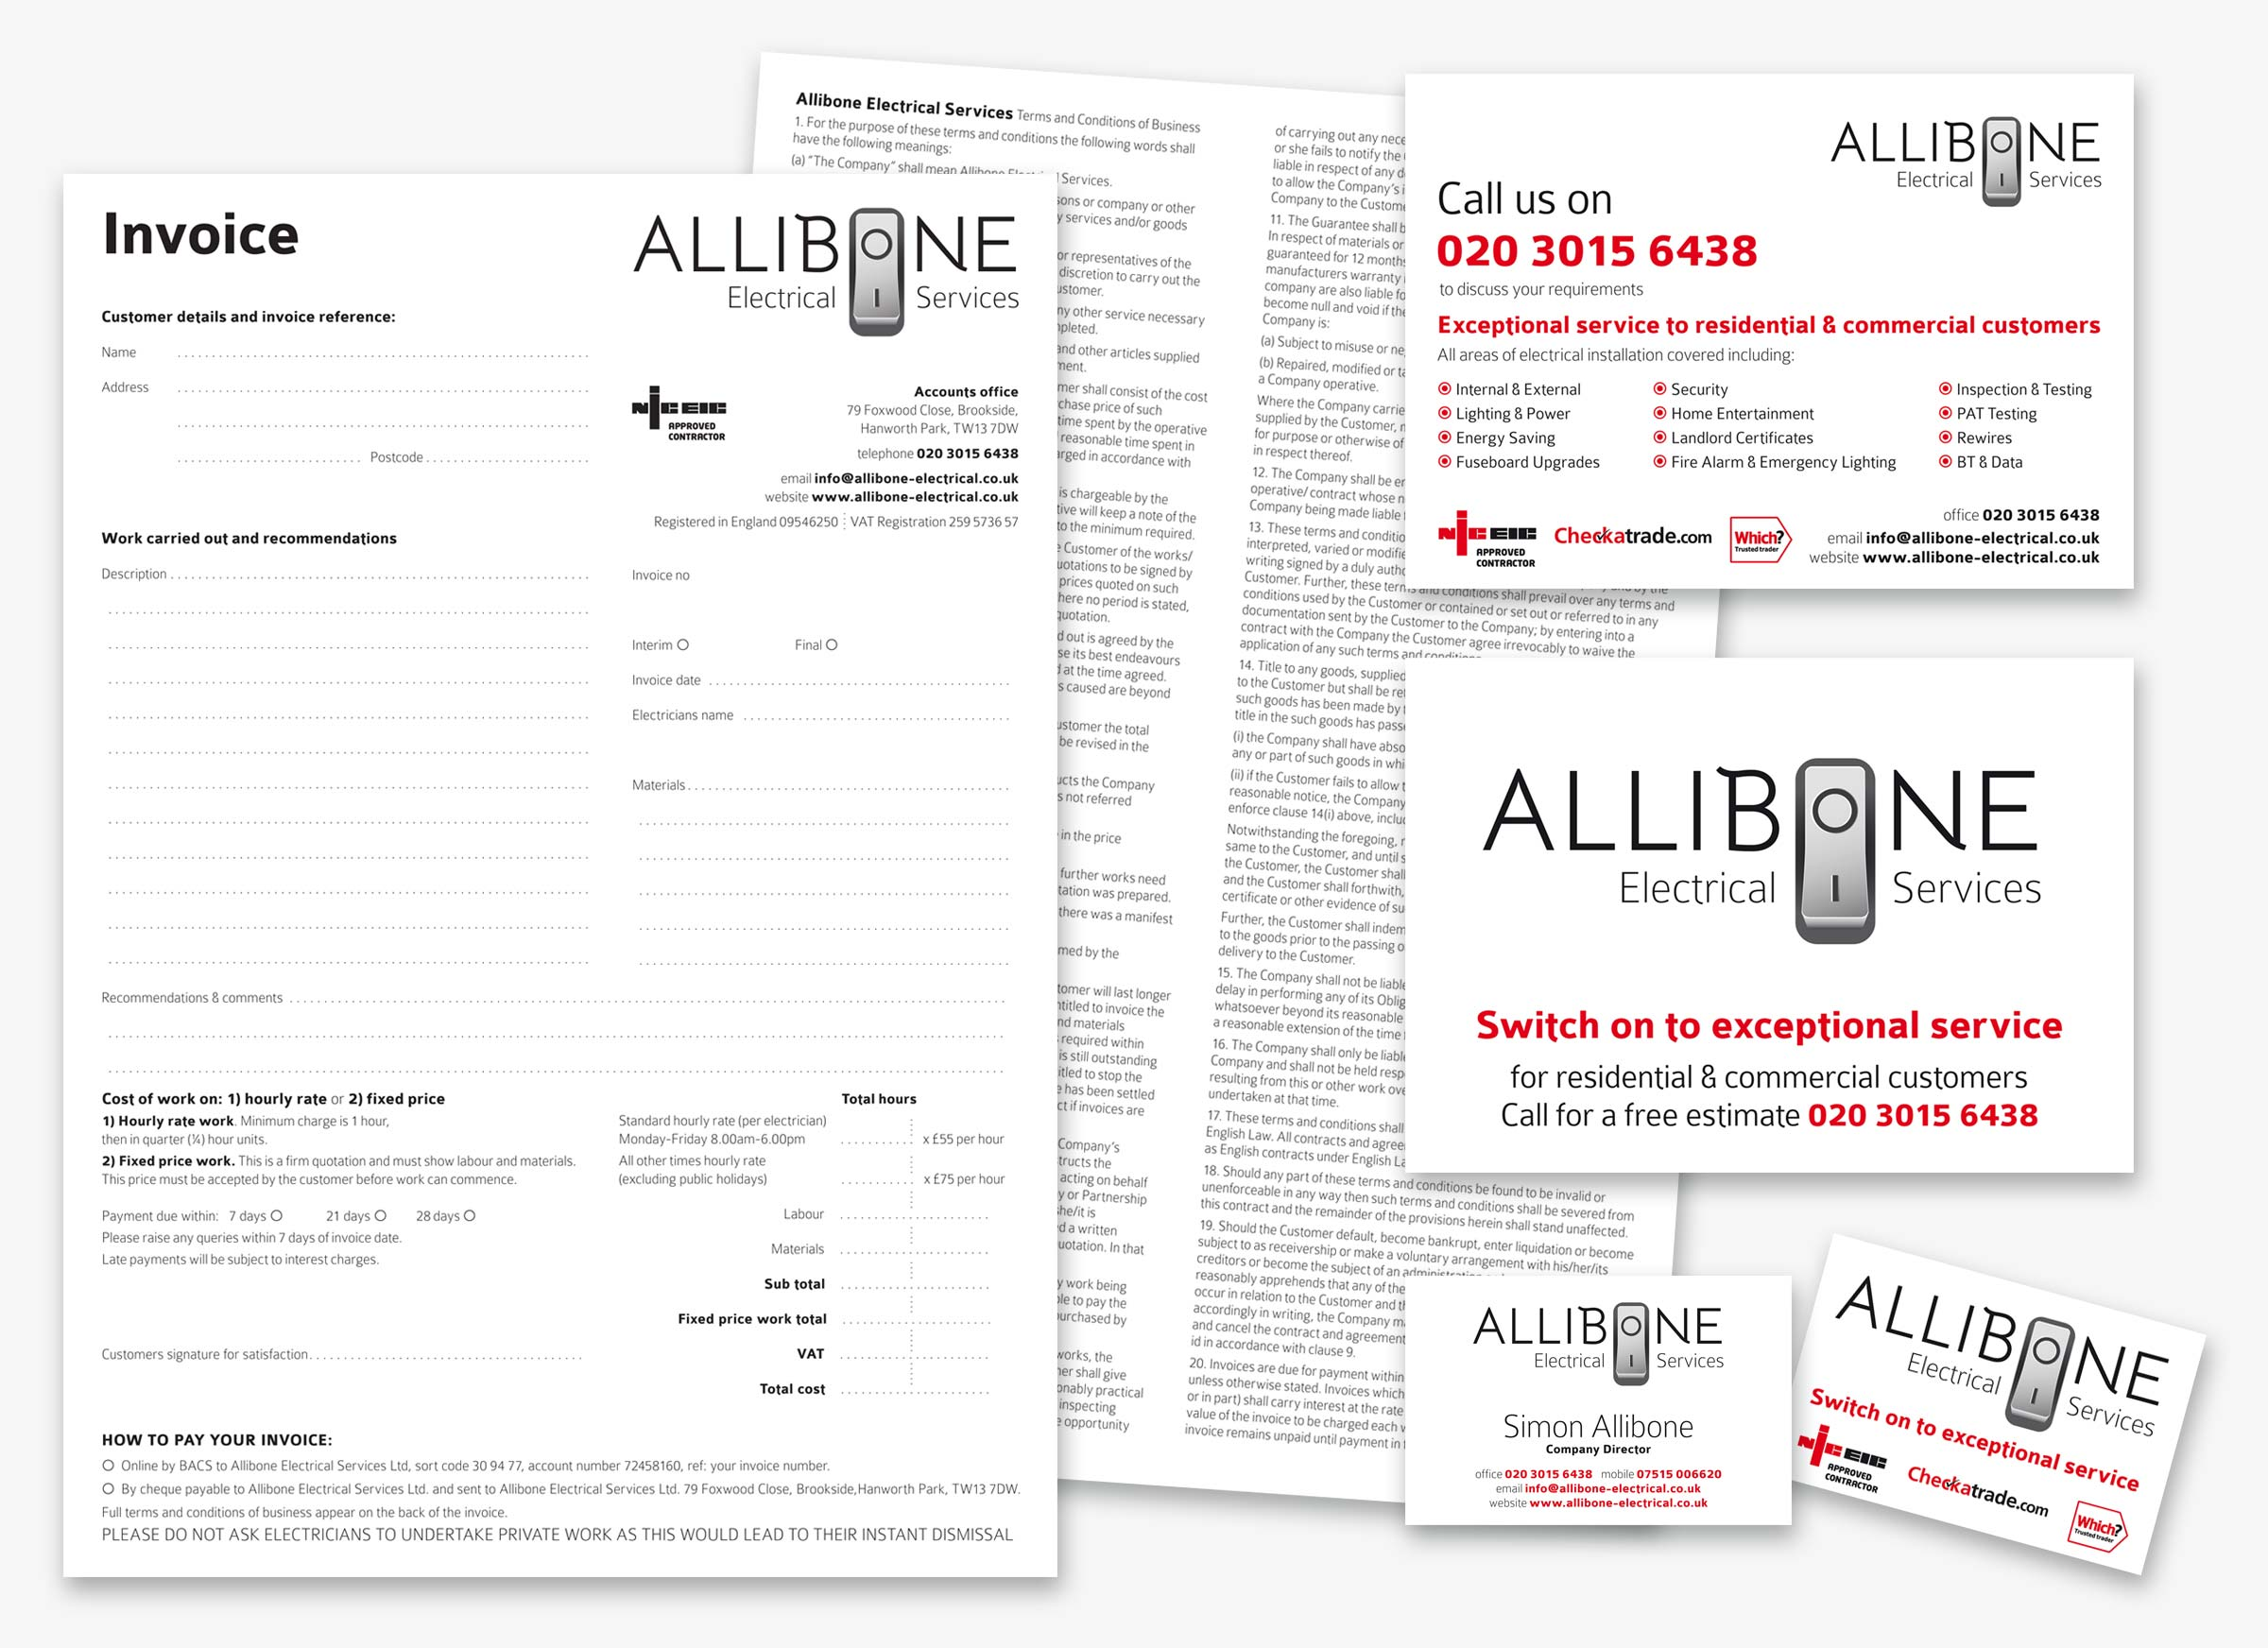 Allibone stationery